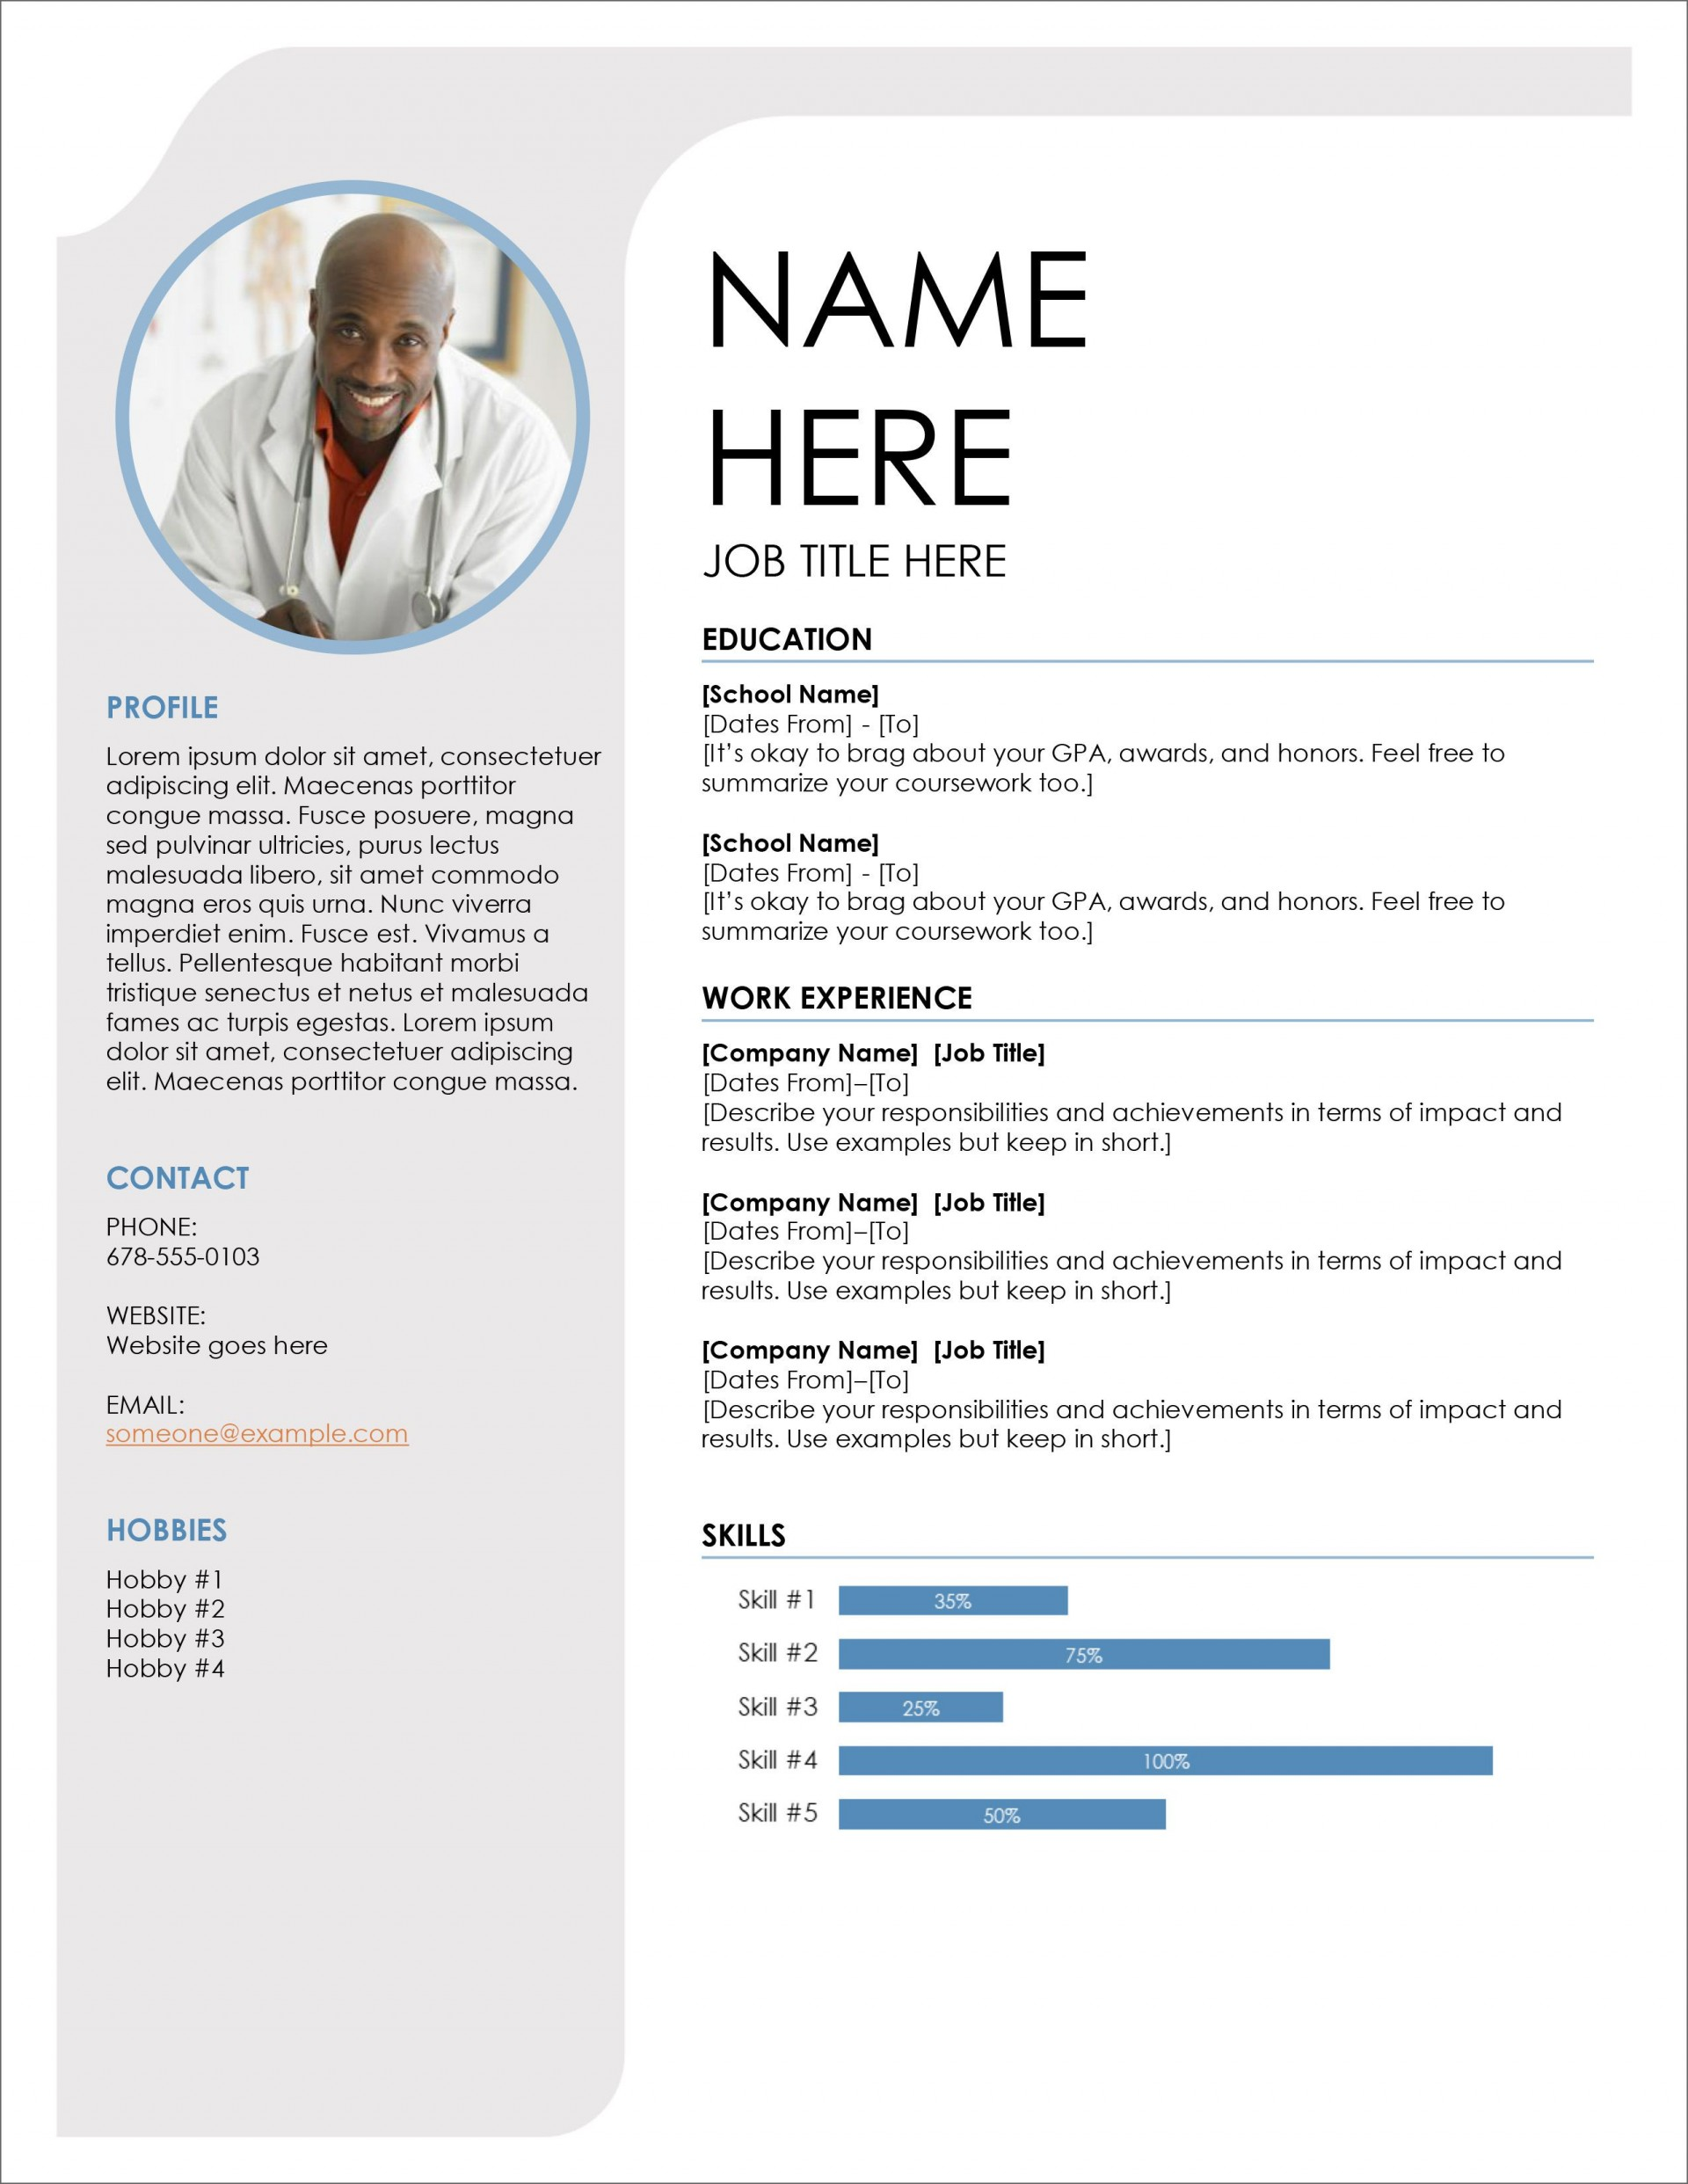 007 Phenomenal Resume Template Word Download Highest Clarity  For Fresher In Format Free 20201920